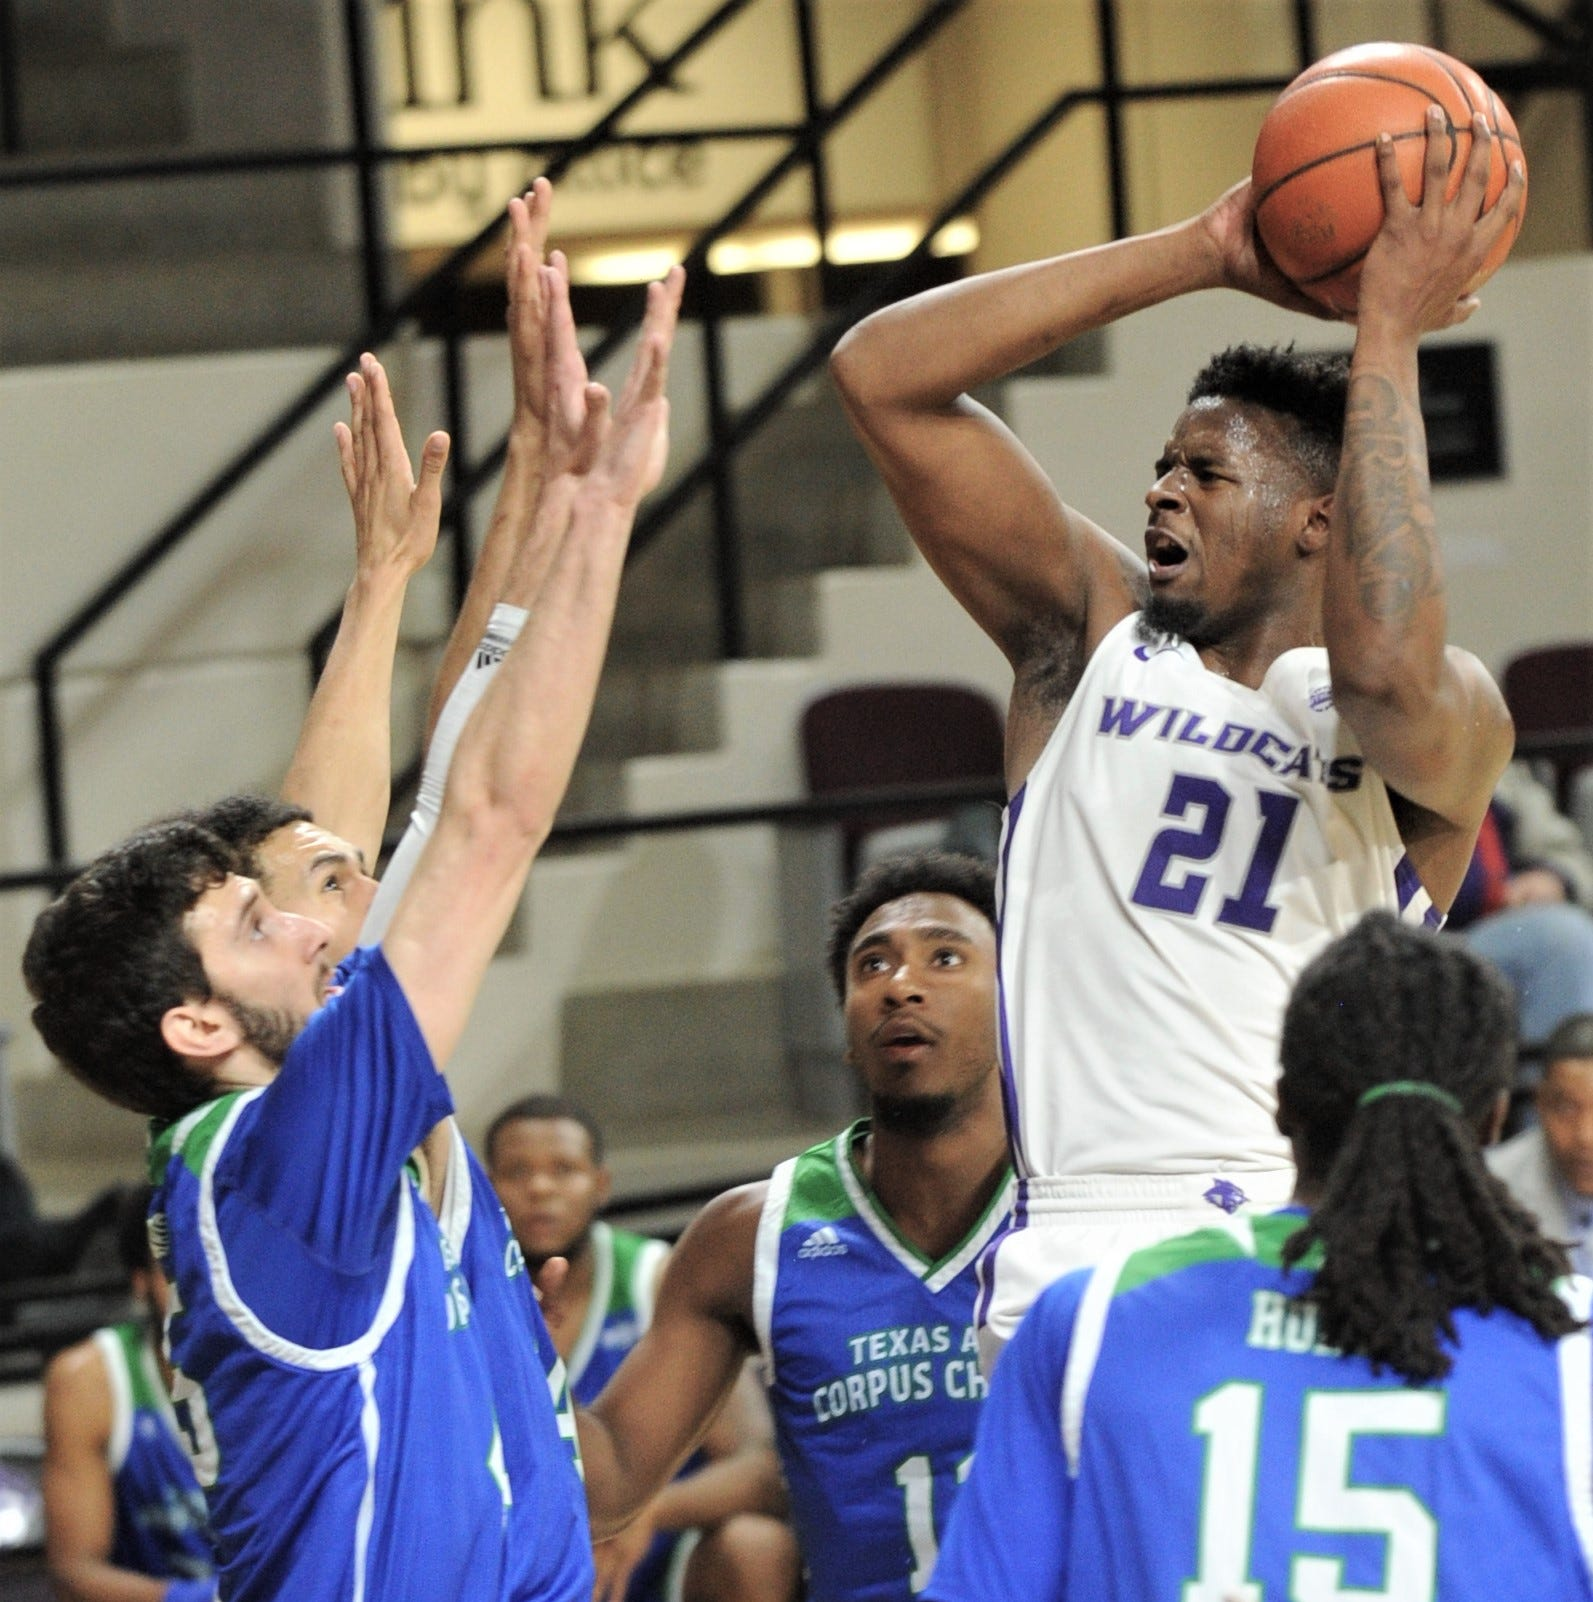 Abilene Christian dismisses Friday, Maxwell from men's basketball team